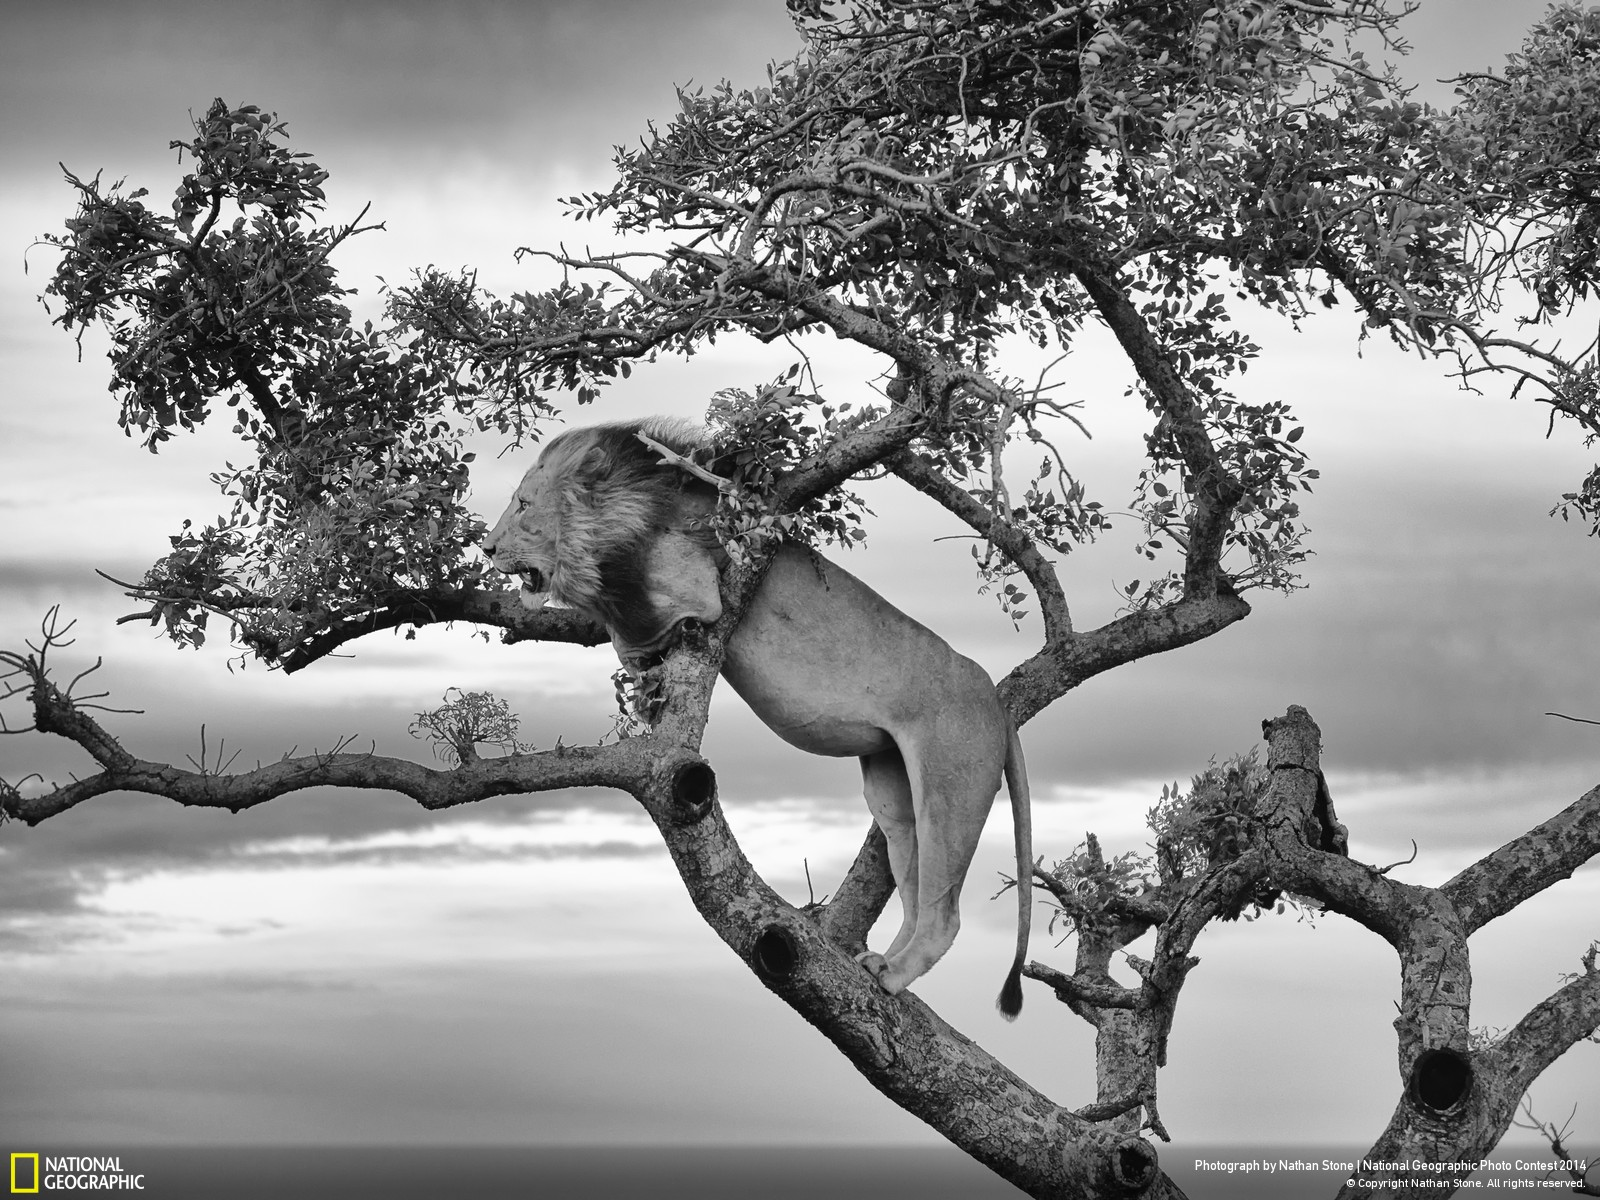 10 of the best national geographic photographs submitted in 2014